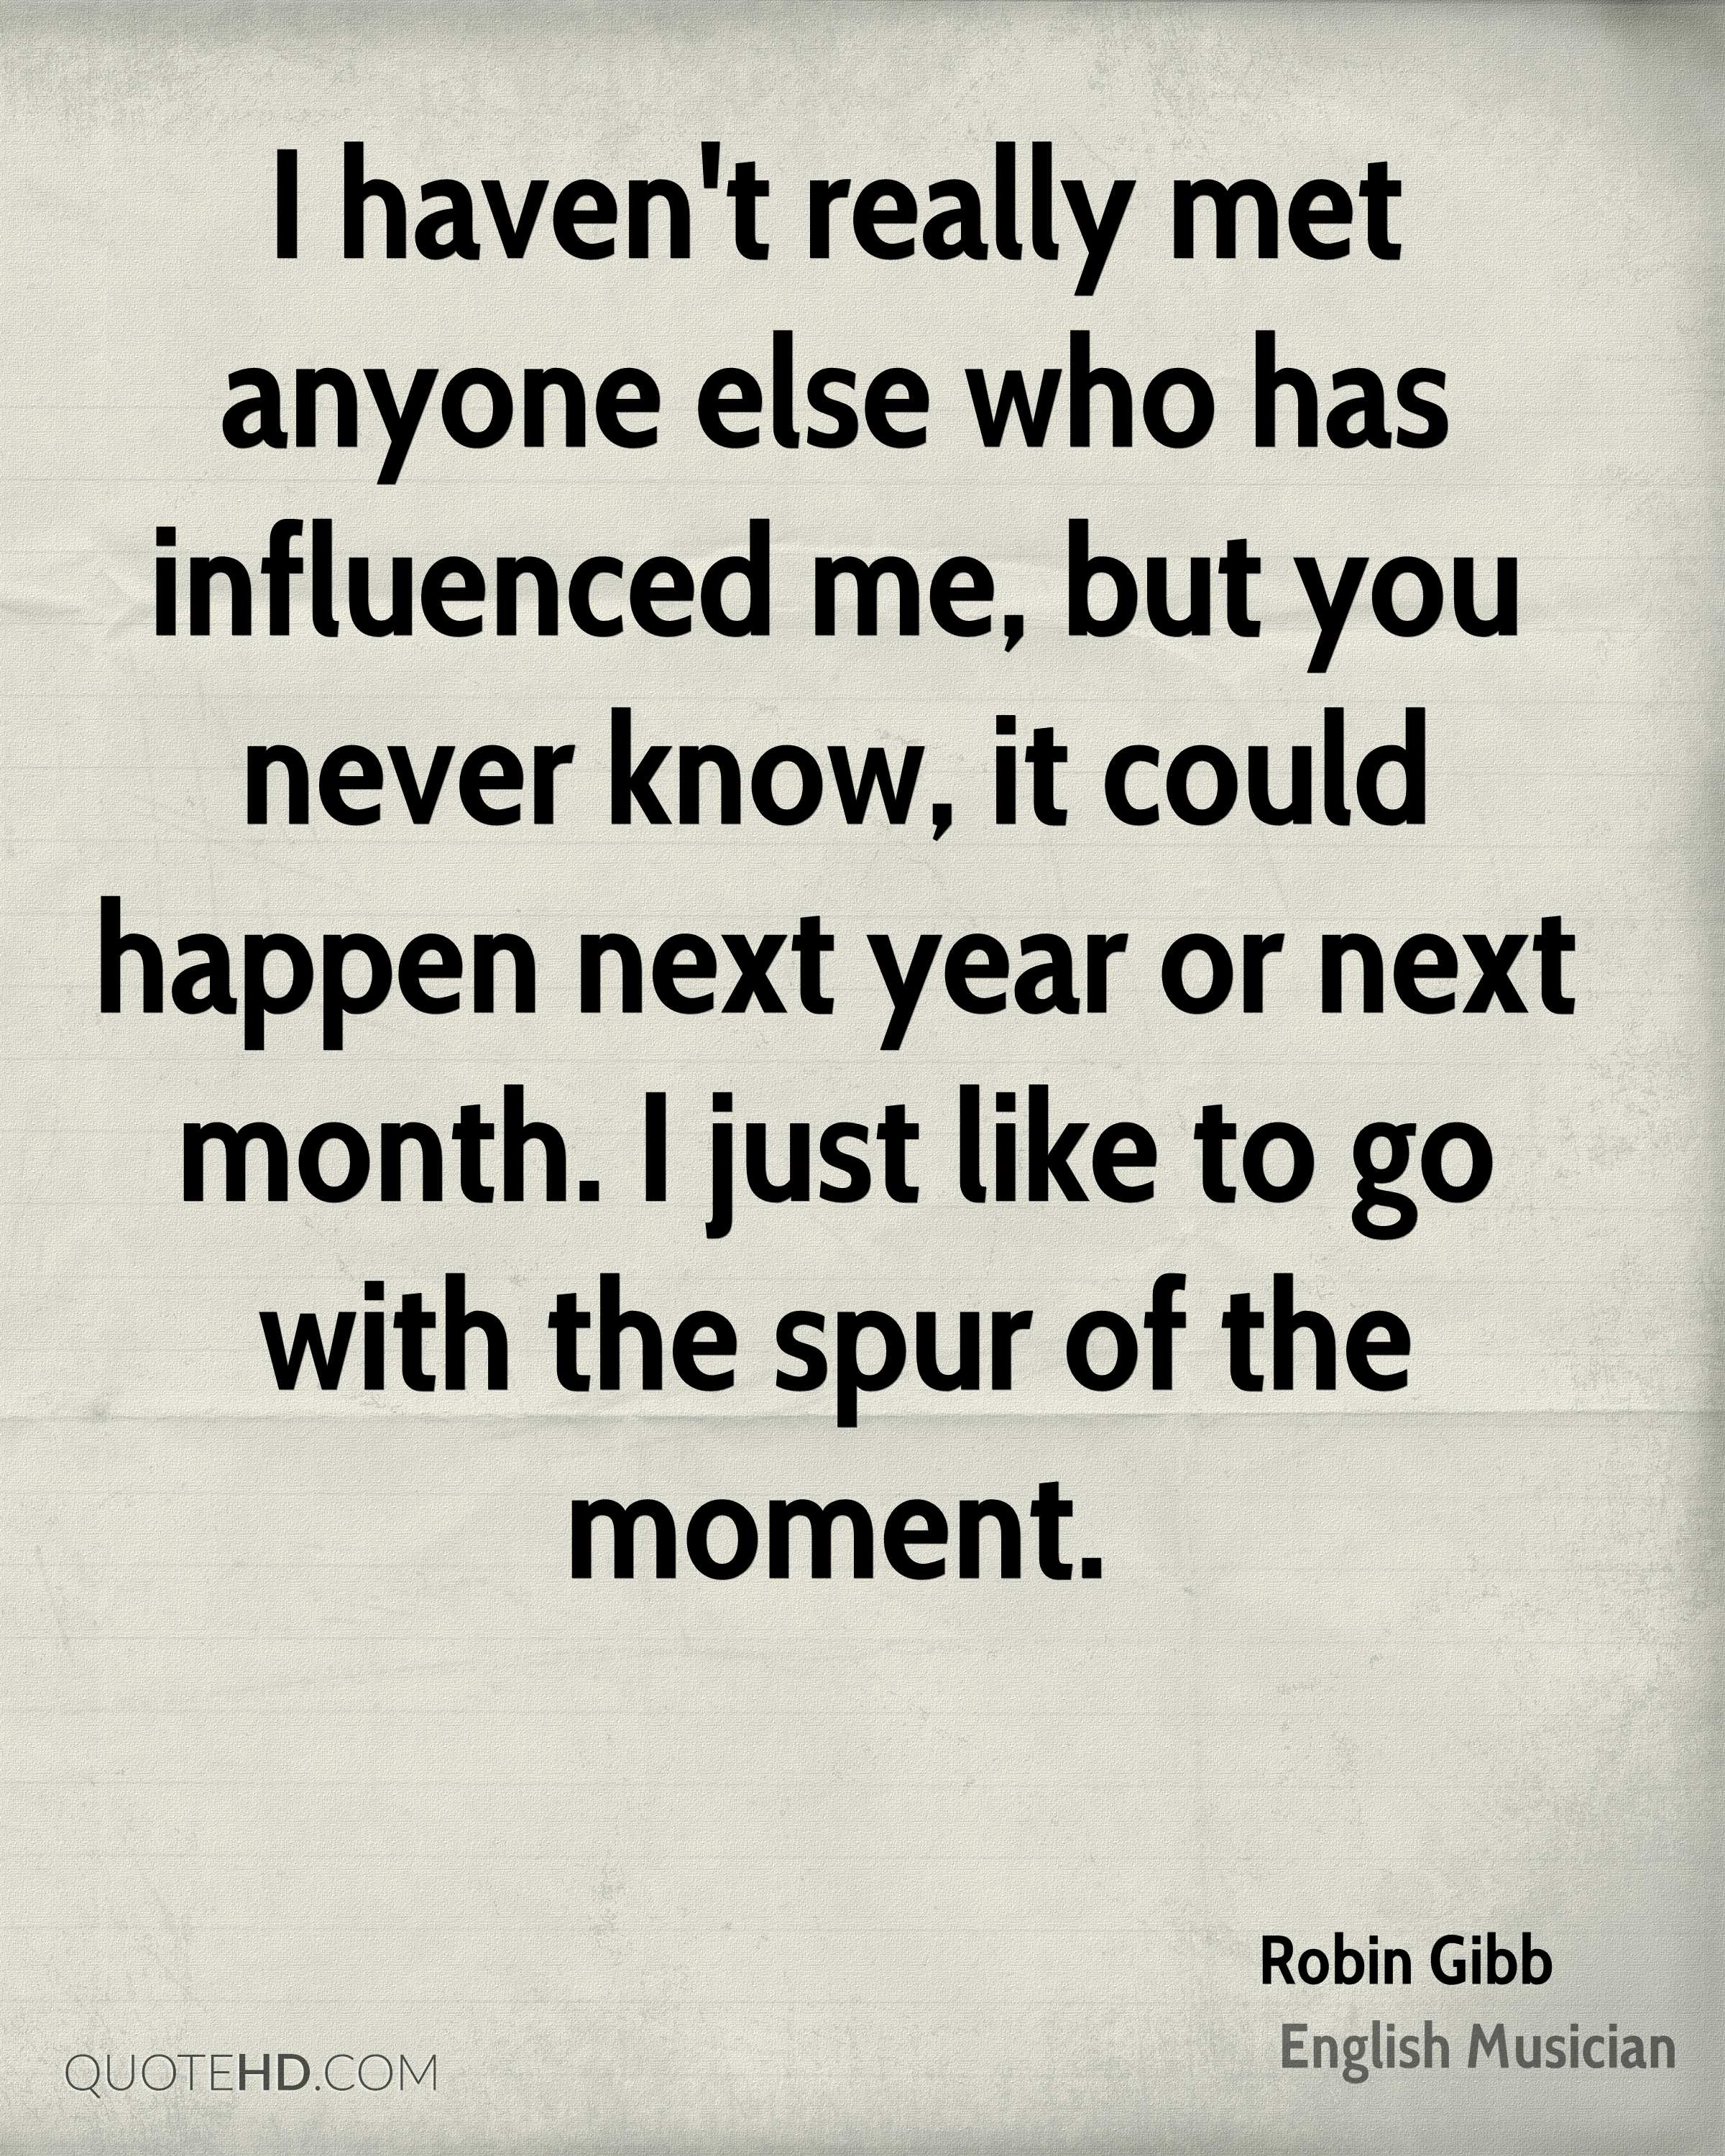 I haven't really met anyone else who has influenced me, but you never know, it could happen next year or next month. I just like to go with the spur of the moment.